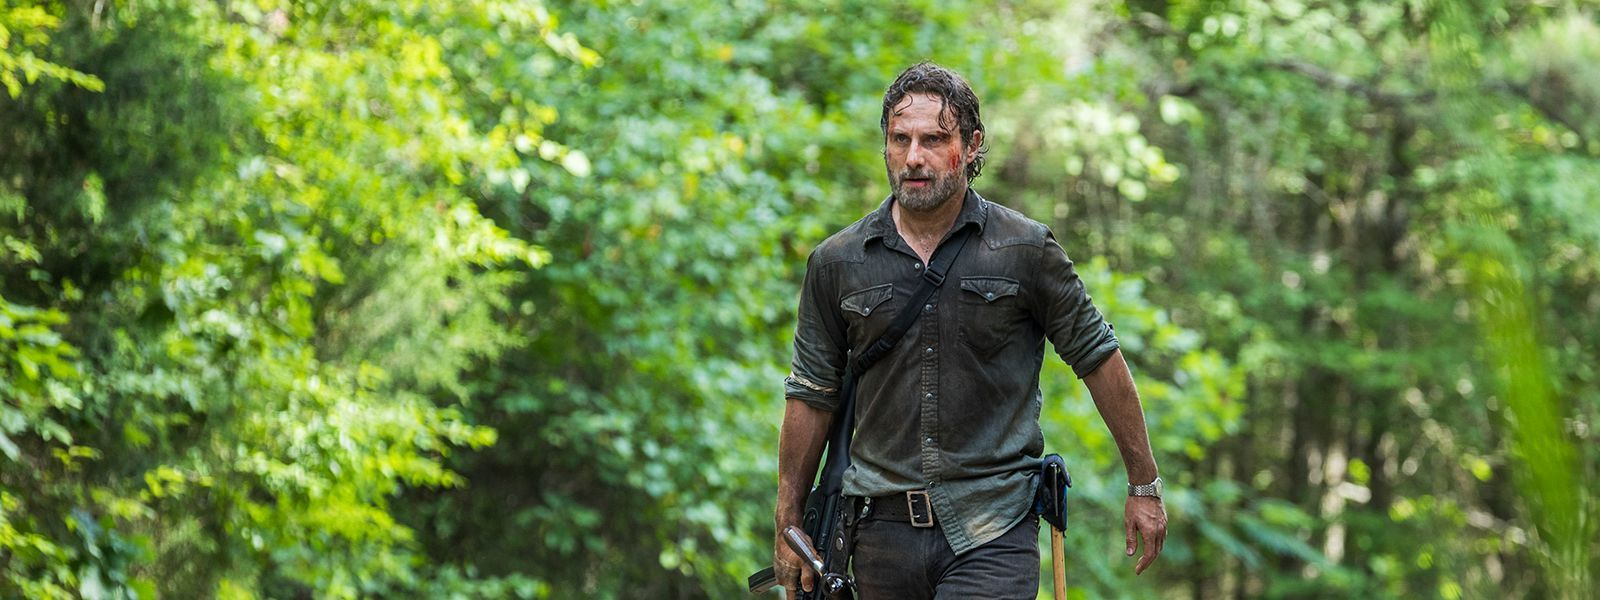 the-walking-dead-episode-806-rick-lincoln-pre-800×600